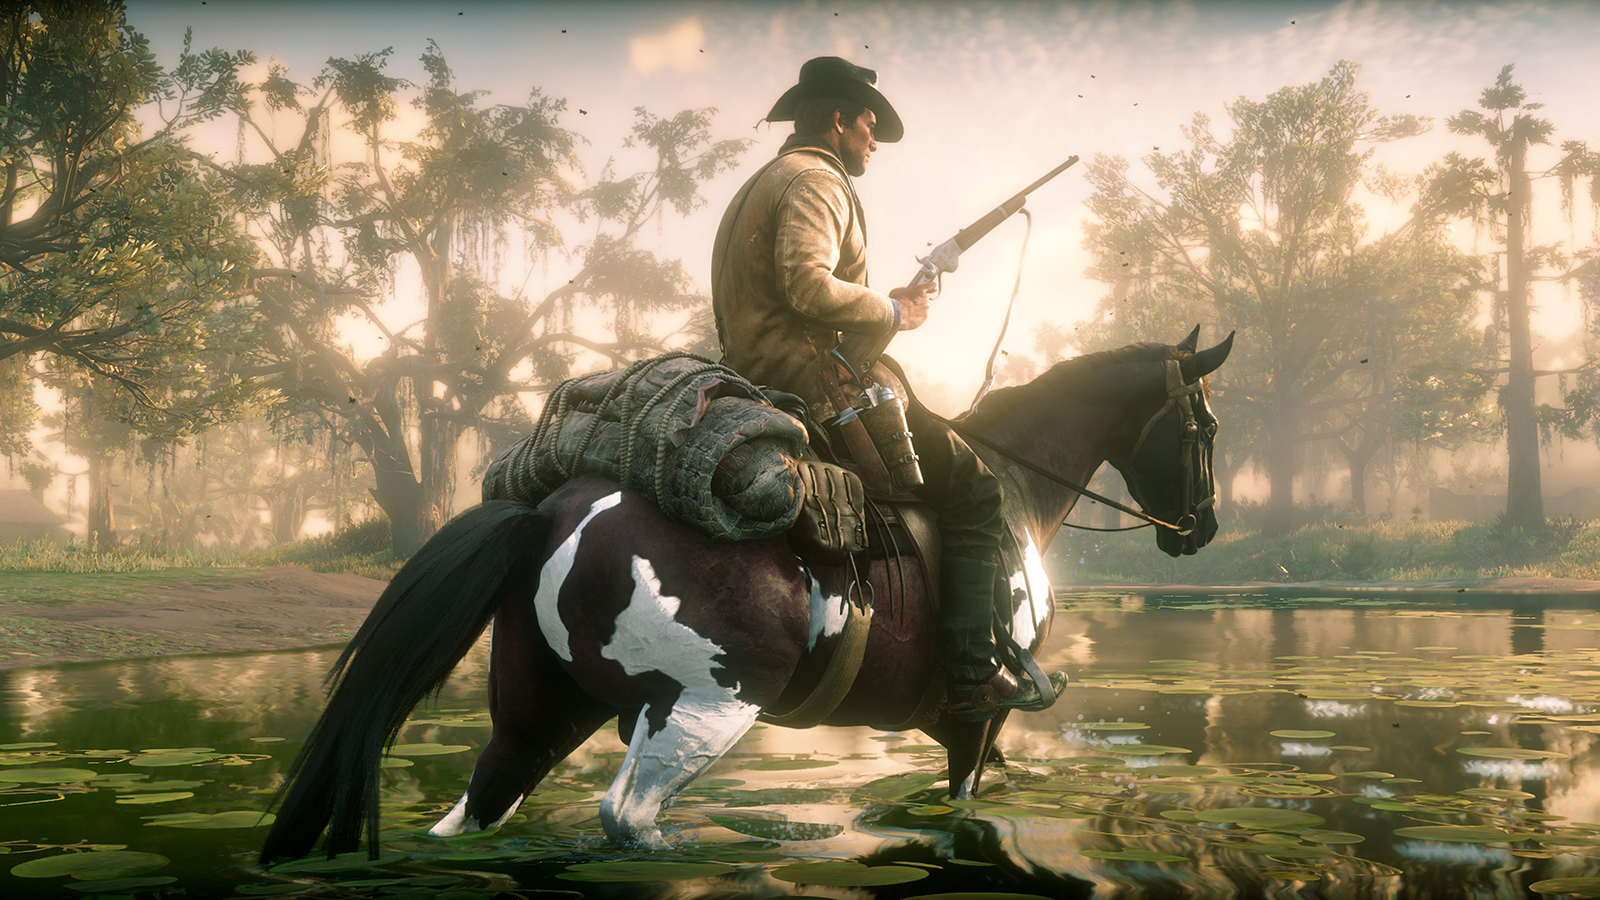 79e30b652 The PR rep confirmed to me that Red Dead Redemption 2 will let you fence  off the junk you pick up during your many robberies. The Witcher-fication  of all ...